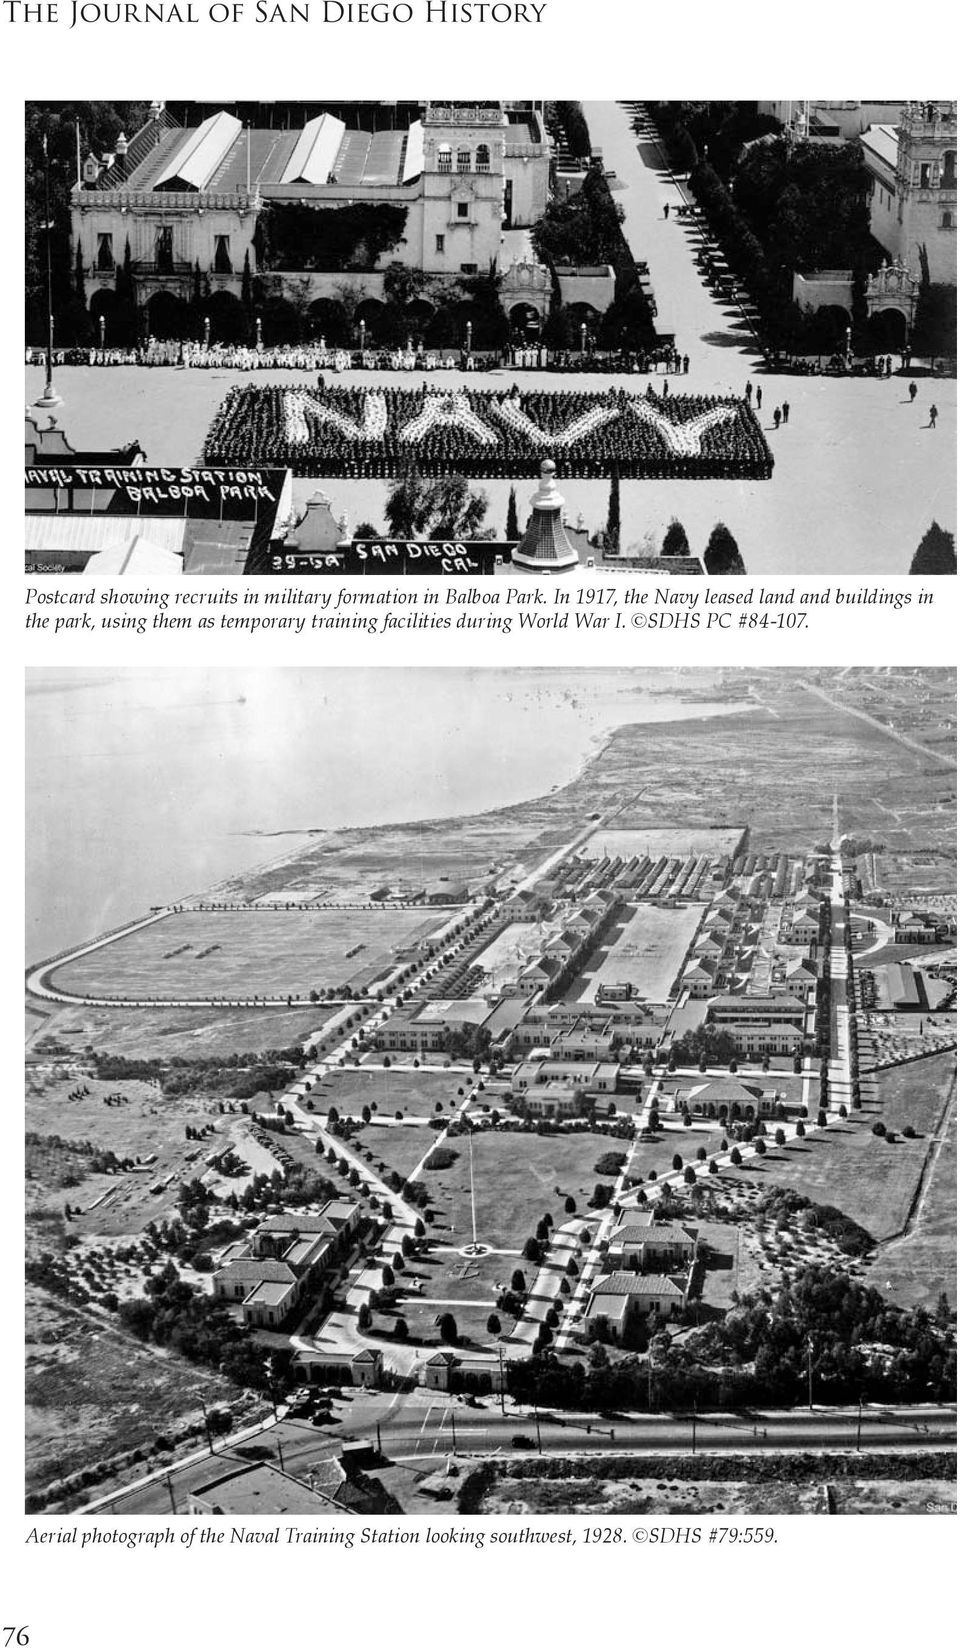 In 1917, the Navy leased land and buildings in the park, using them as temporary